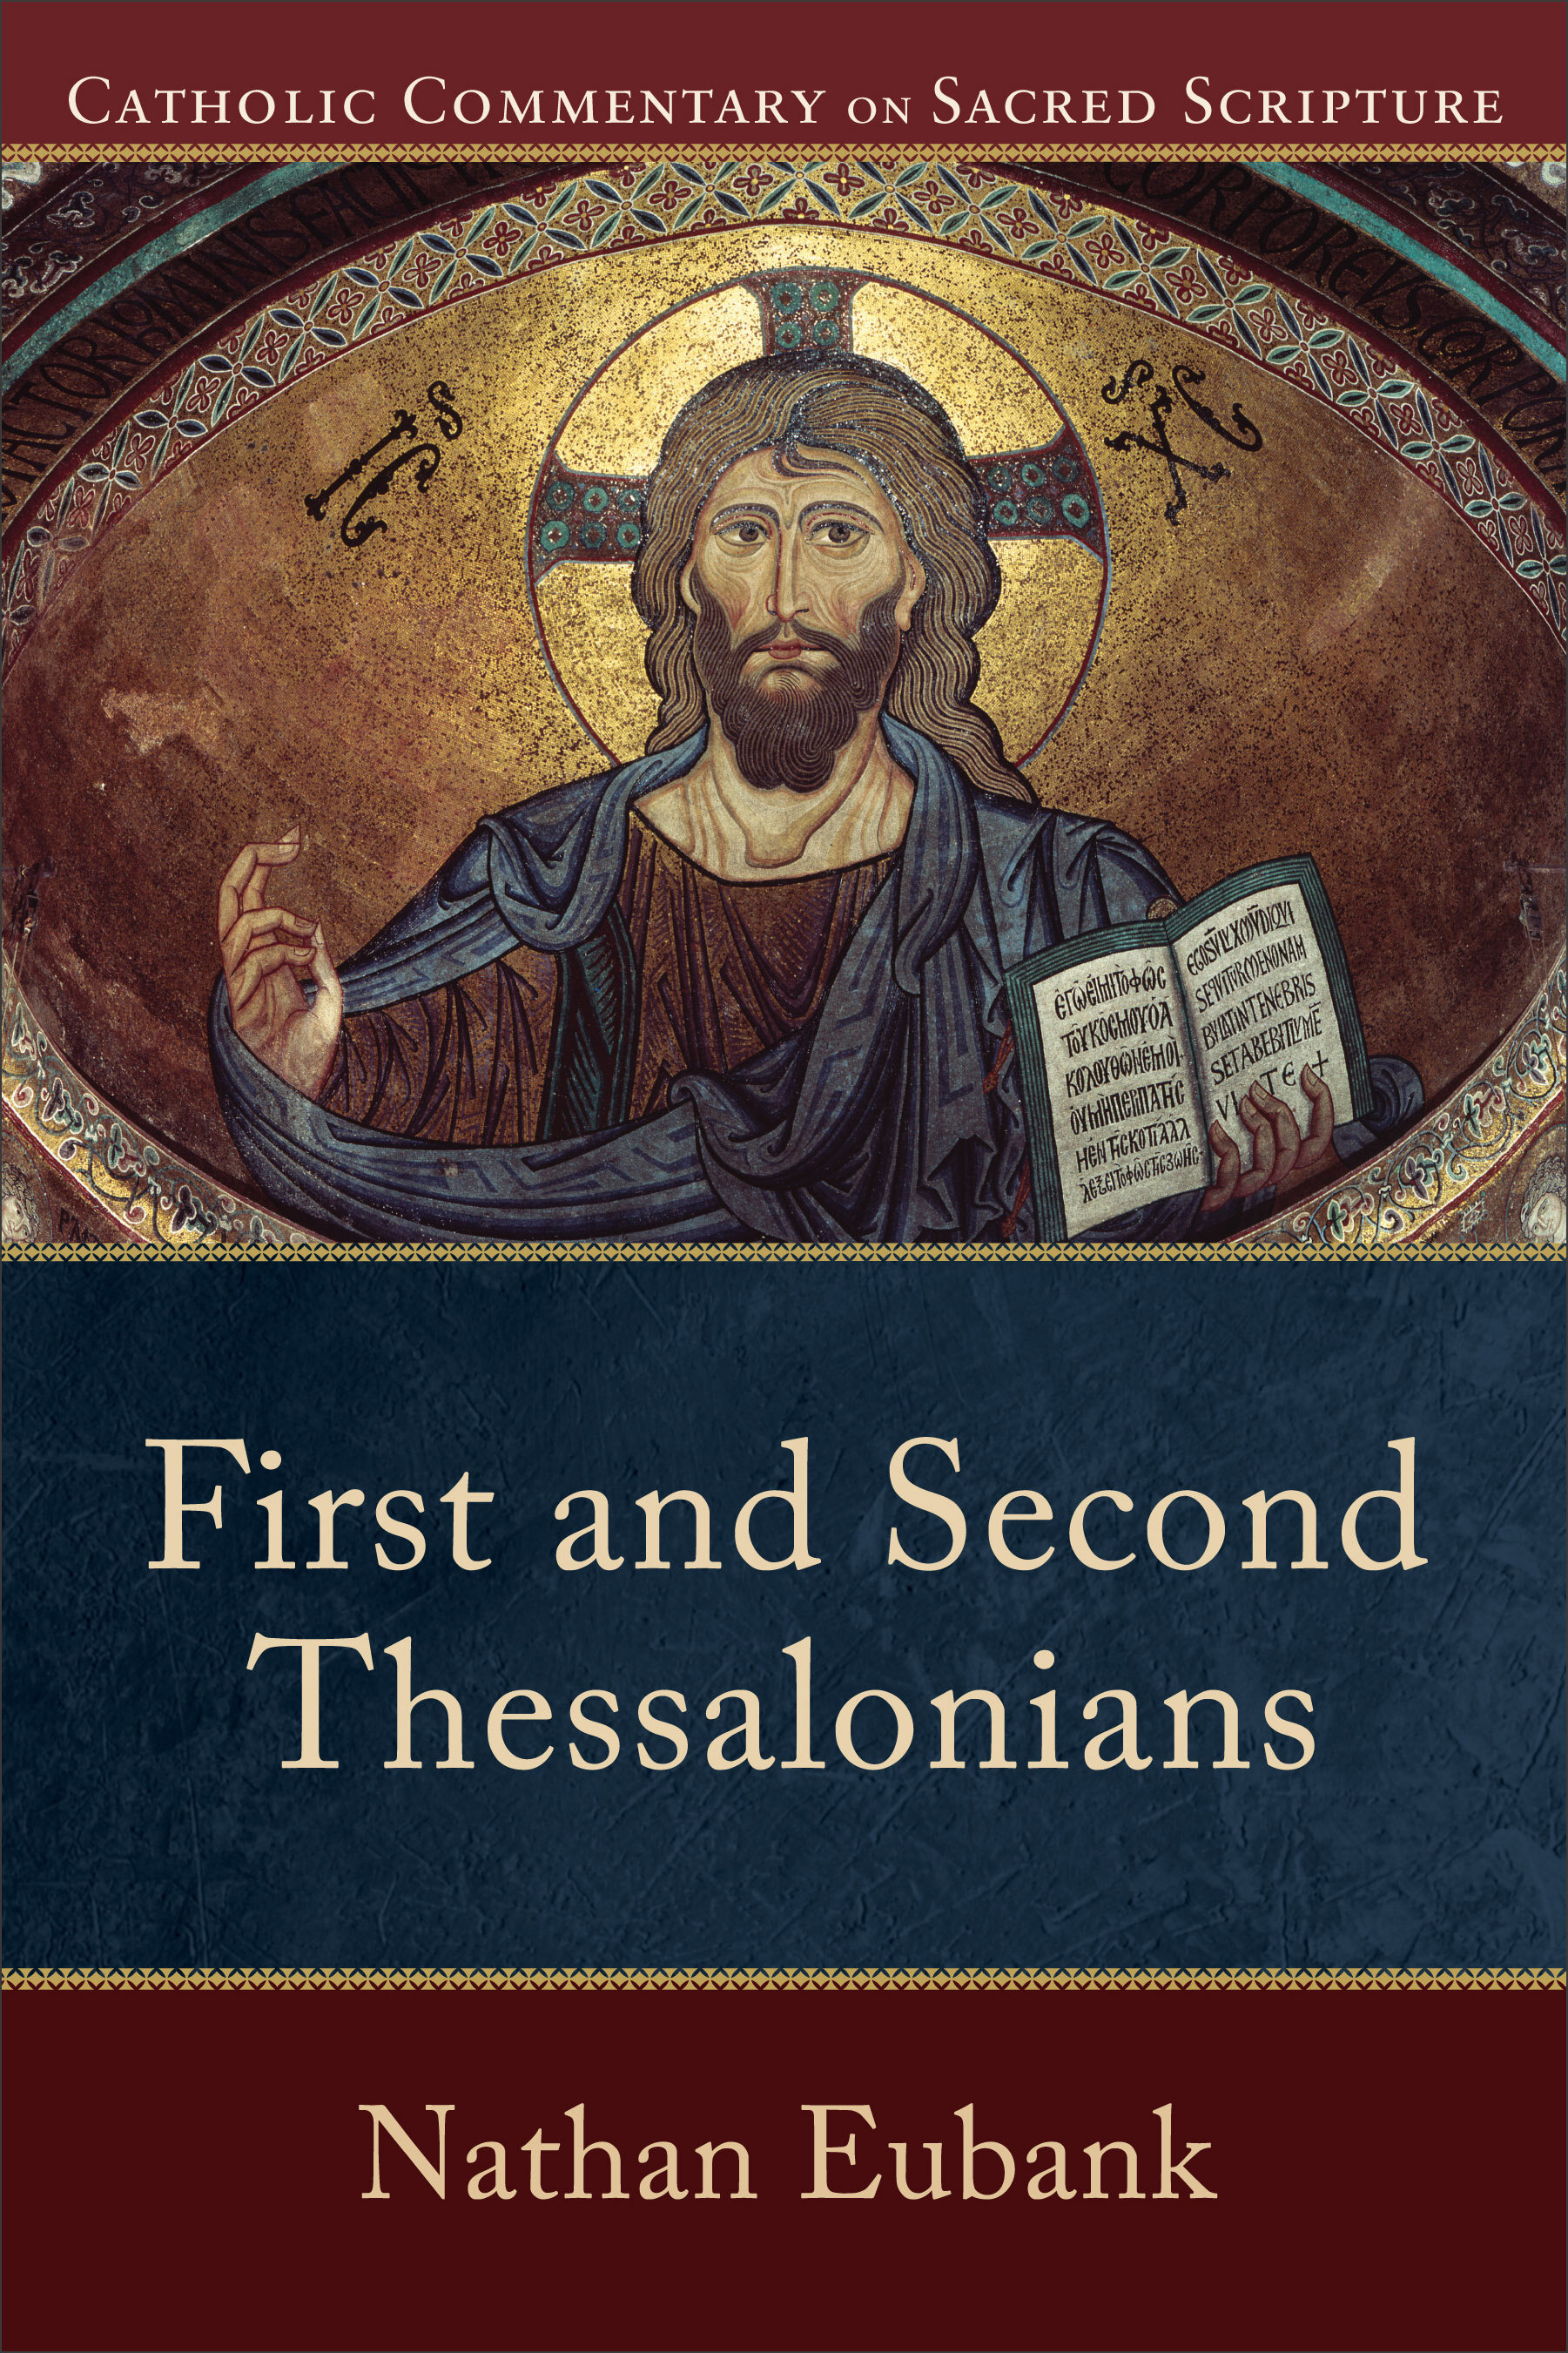 Catholic Commentary on Sacred Scripture: First and Second Thessalonians